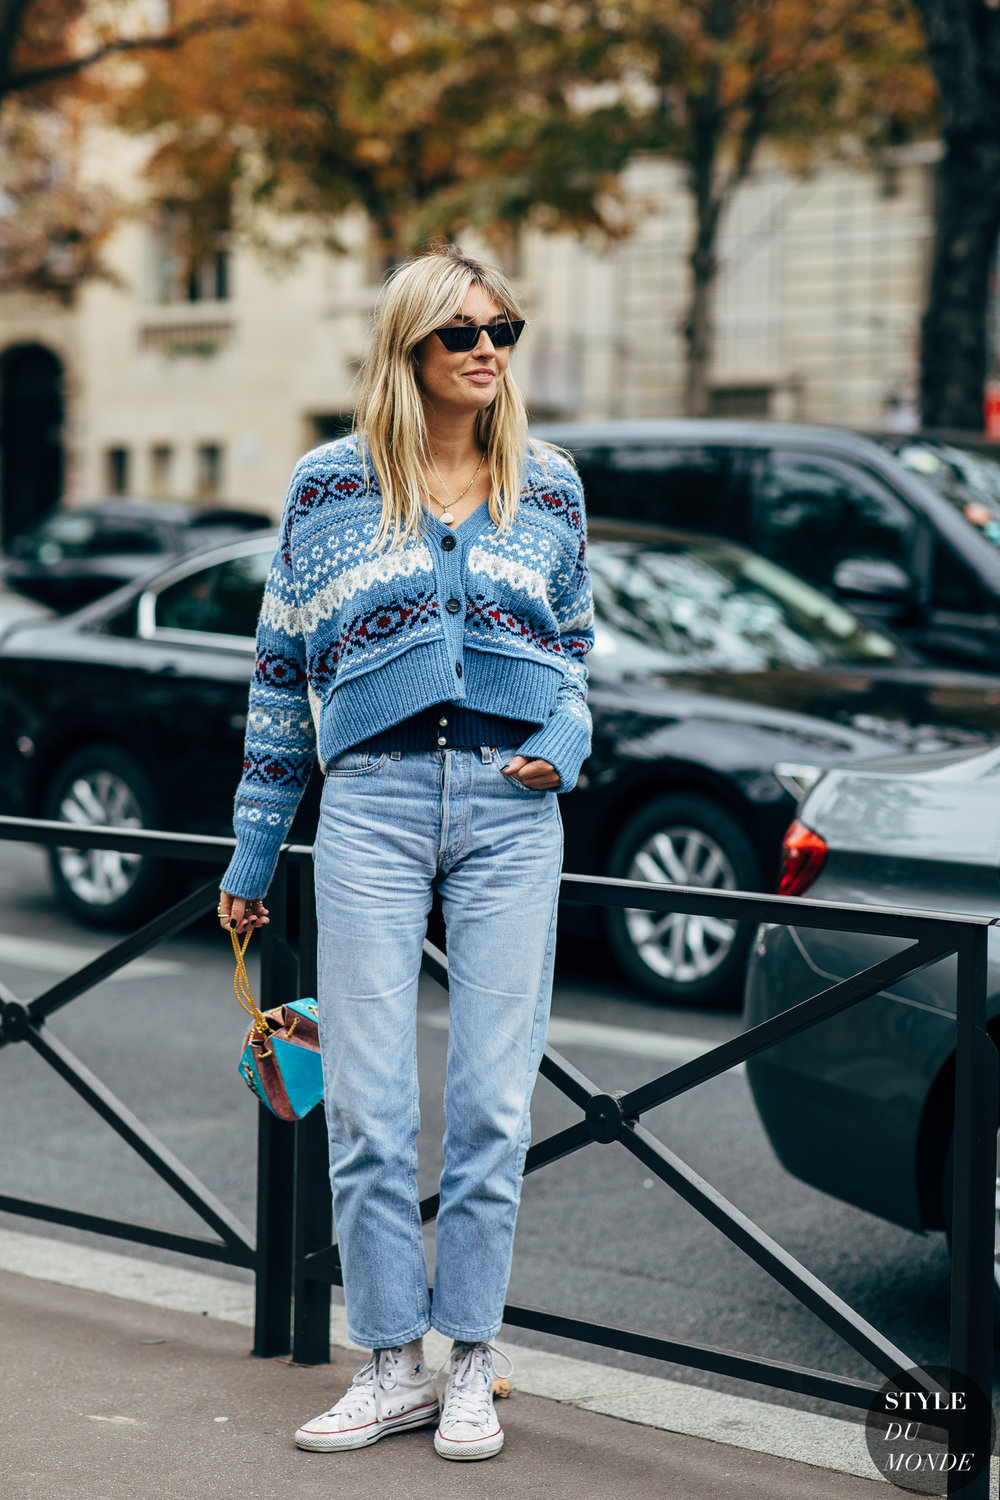 Camille-Charriere-by-STYLEDUMONDE-Street-Style-Fashion-Photography_48A7352.jpg